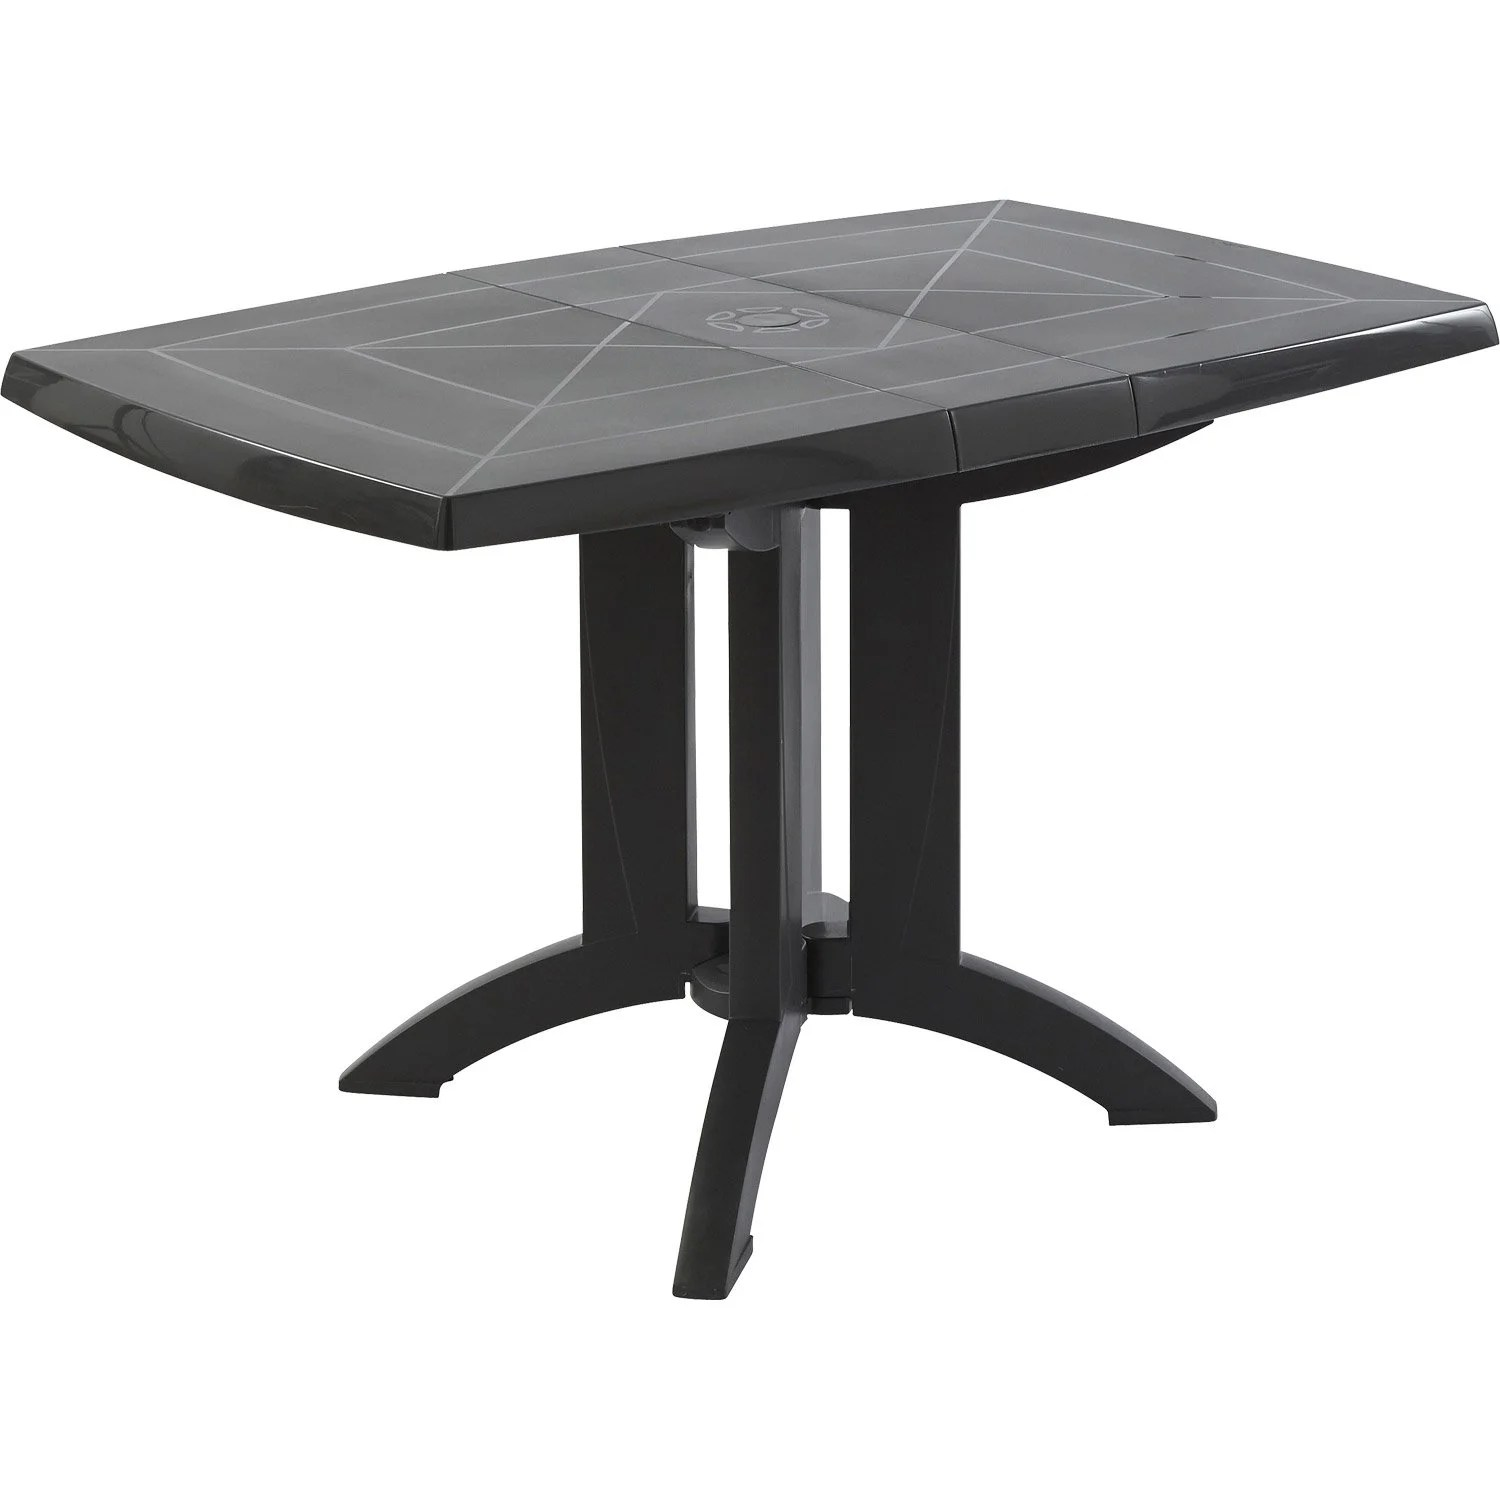 Table De Jardin Verte Table De Jardin Grosfillex Véga Rectangulaire Anthracite 4